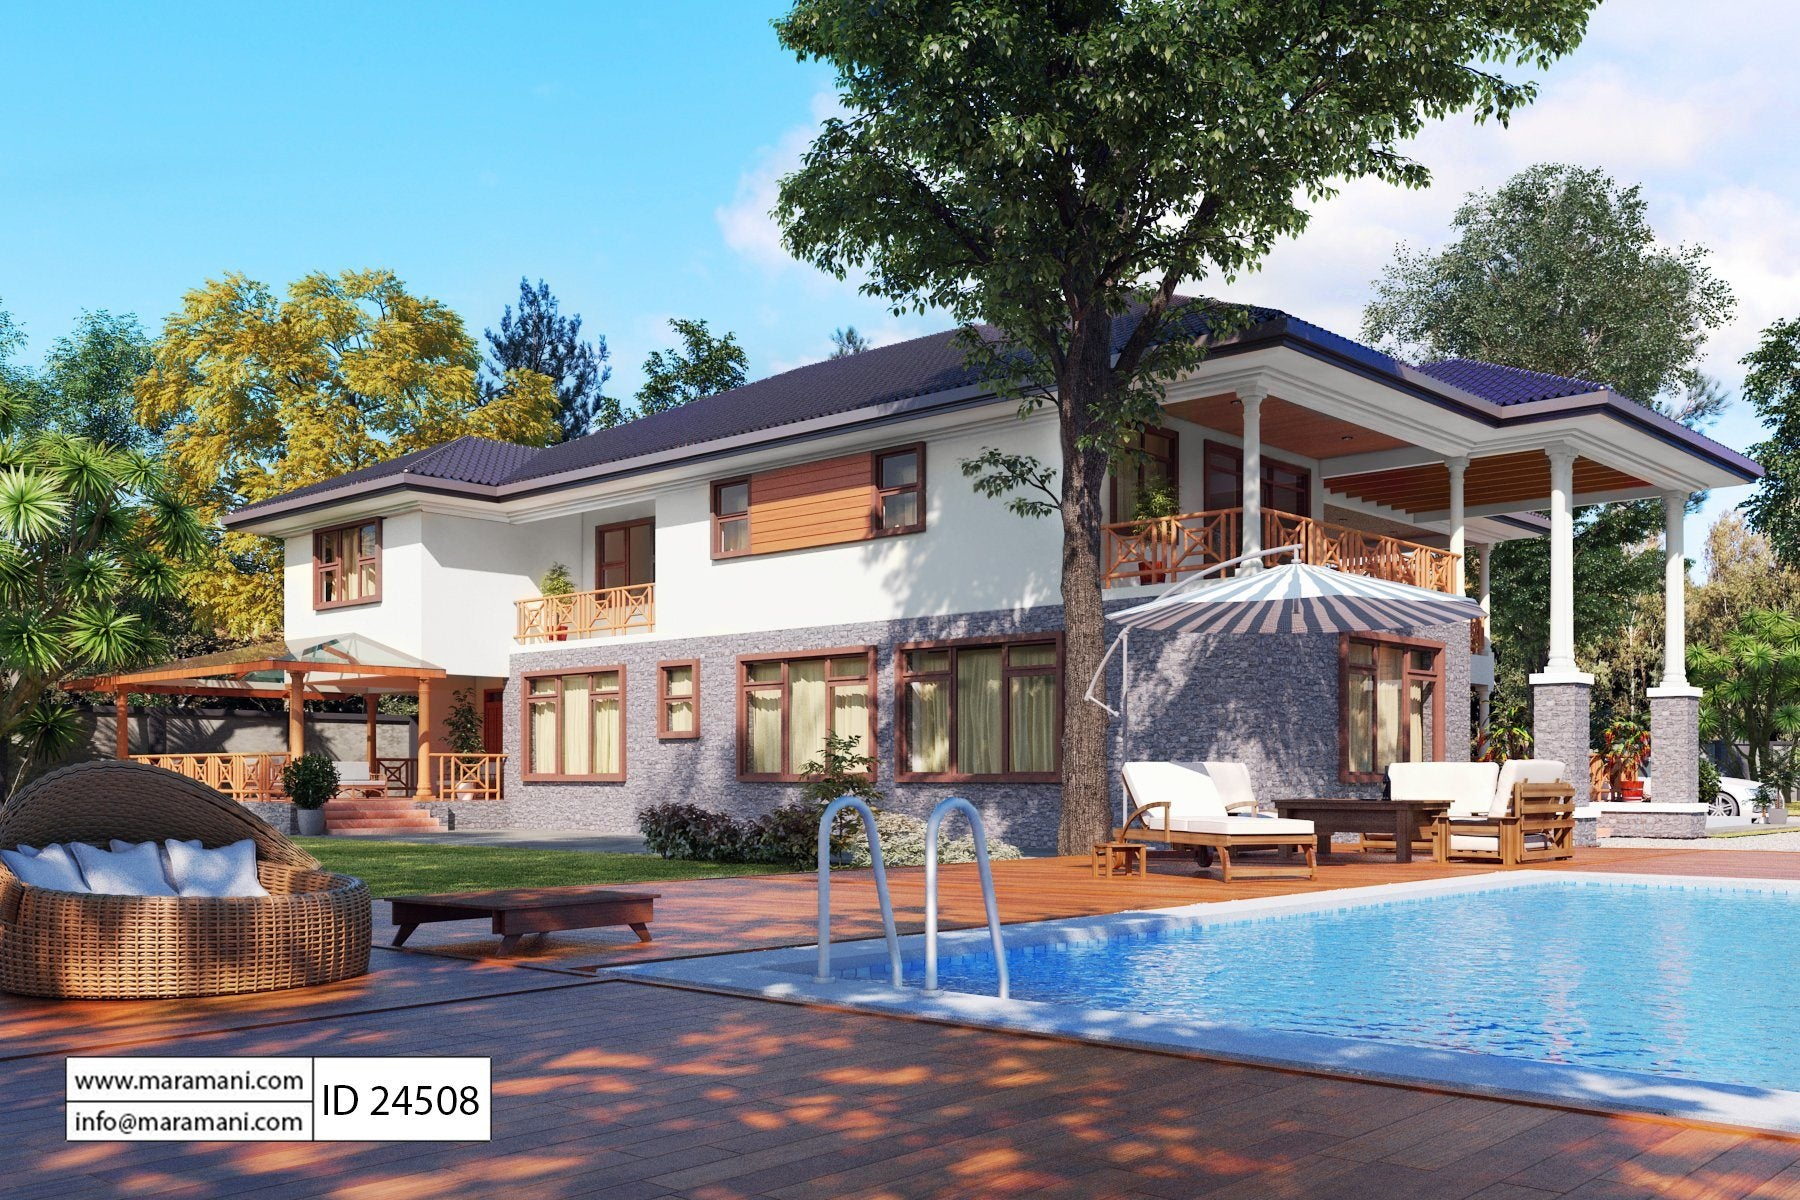 4 bedroom villa id 24508 villa plans for 4 bedroom villa designs